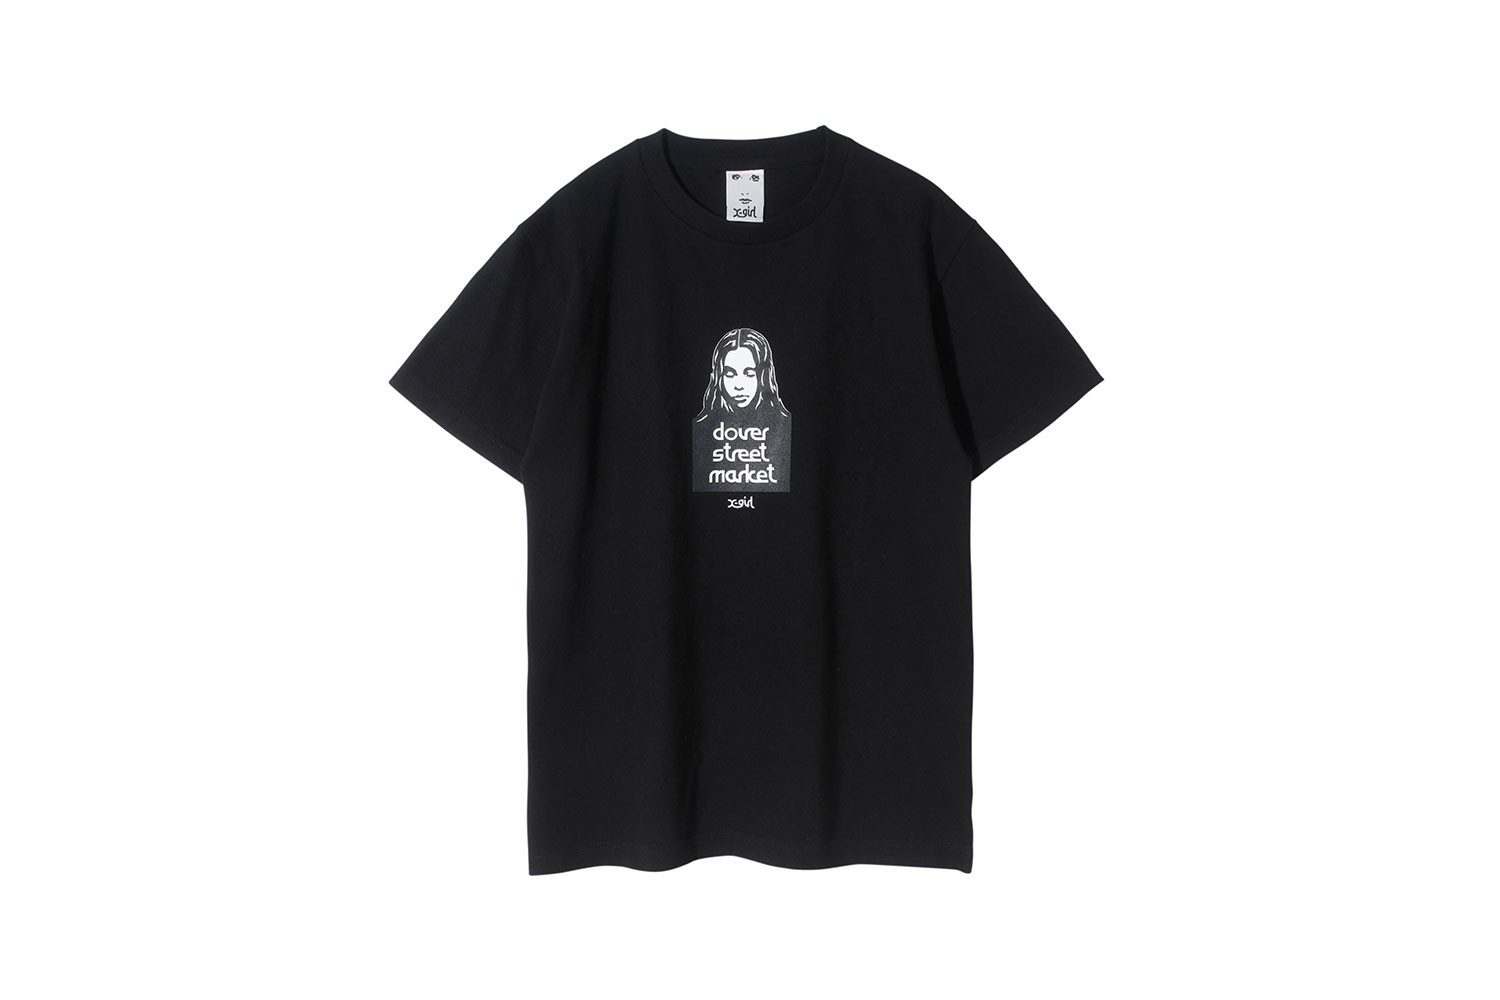 dover street market x-girl london dsml pop-up collaboration t-shirts dresses womens streetwear